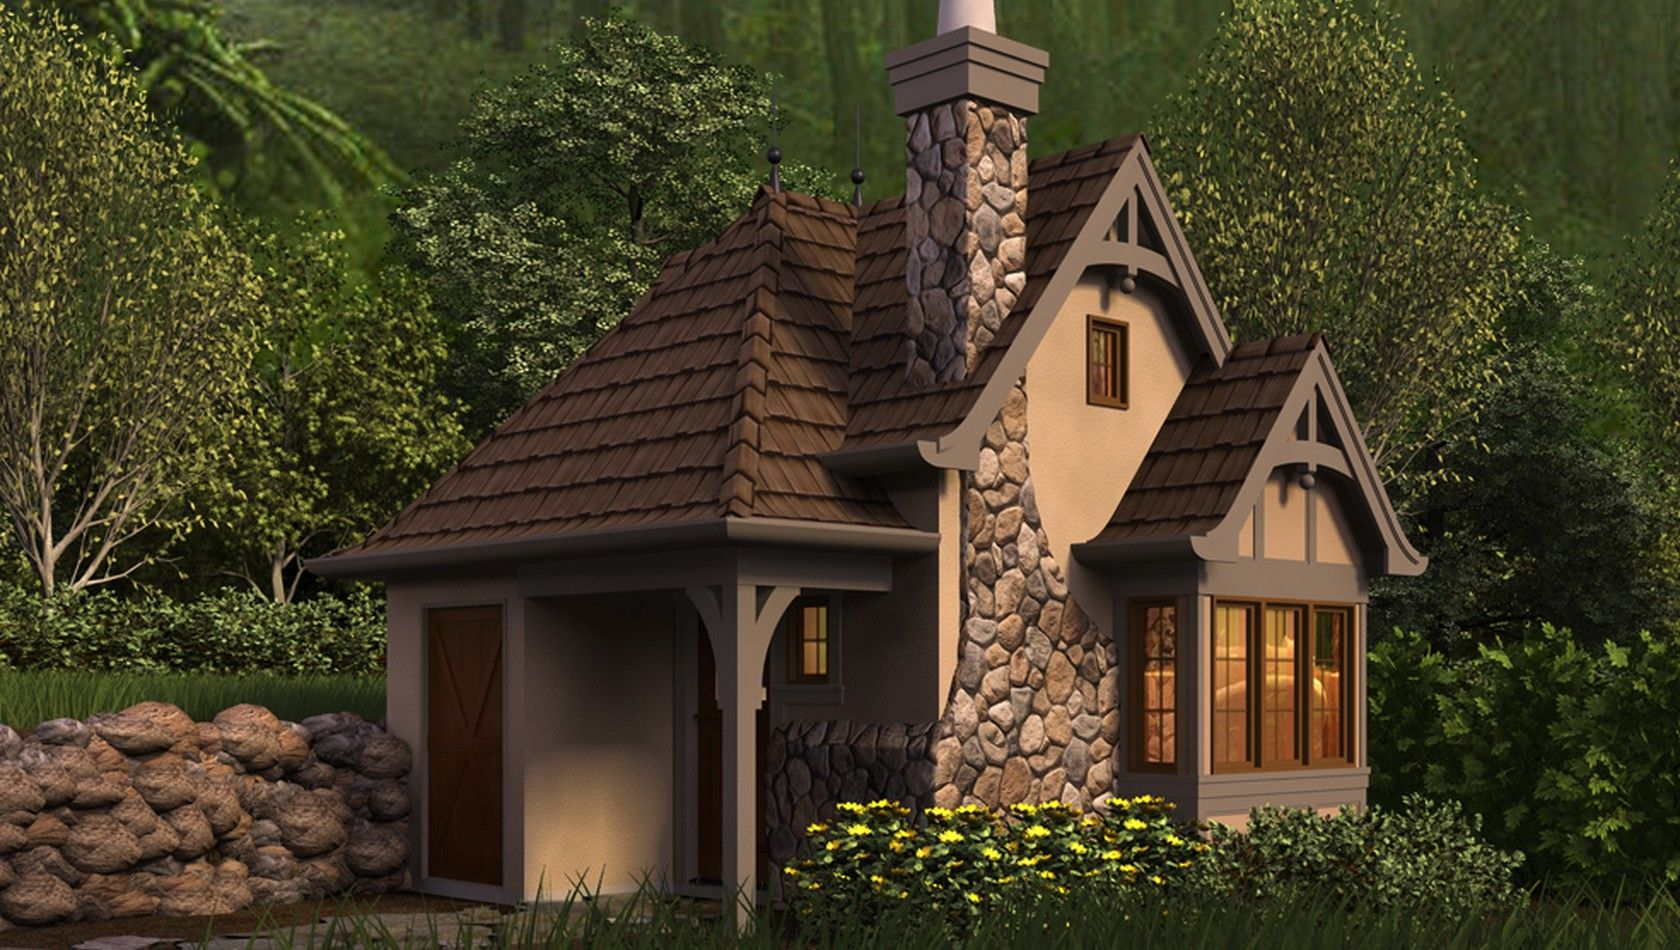 House plans storybook cottage image home and style for Cottege house